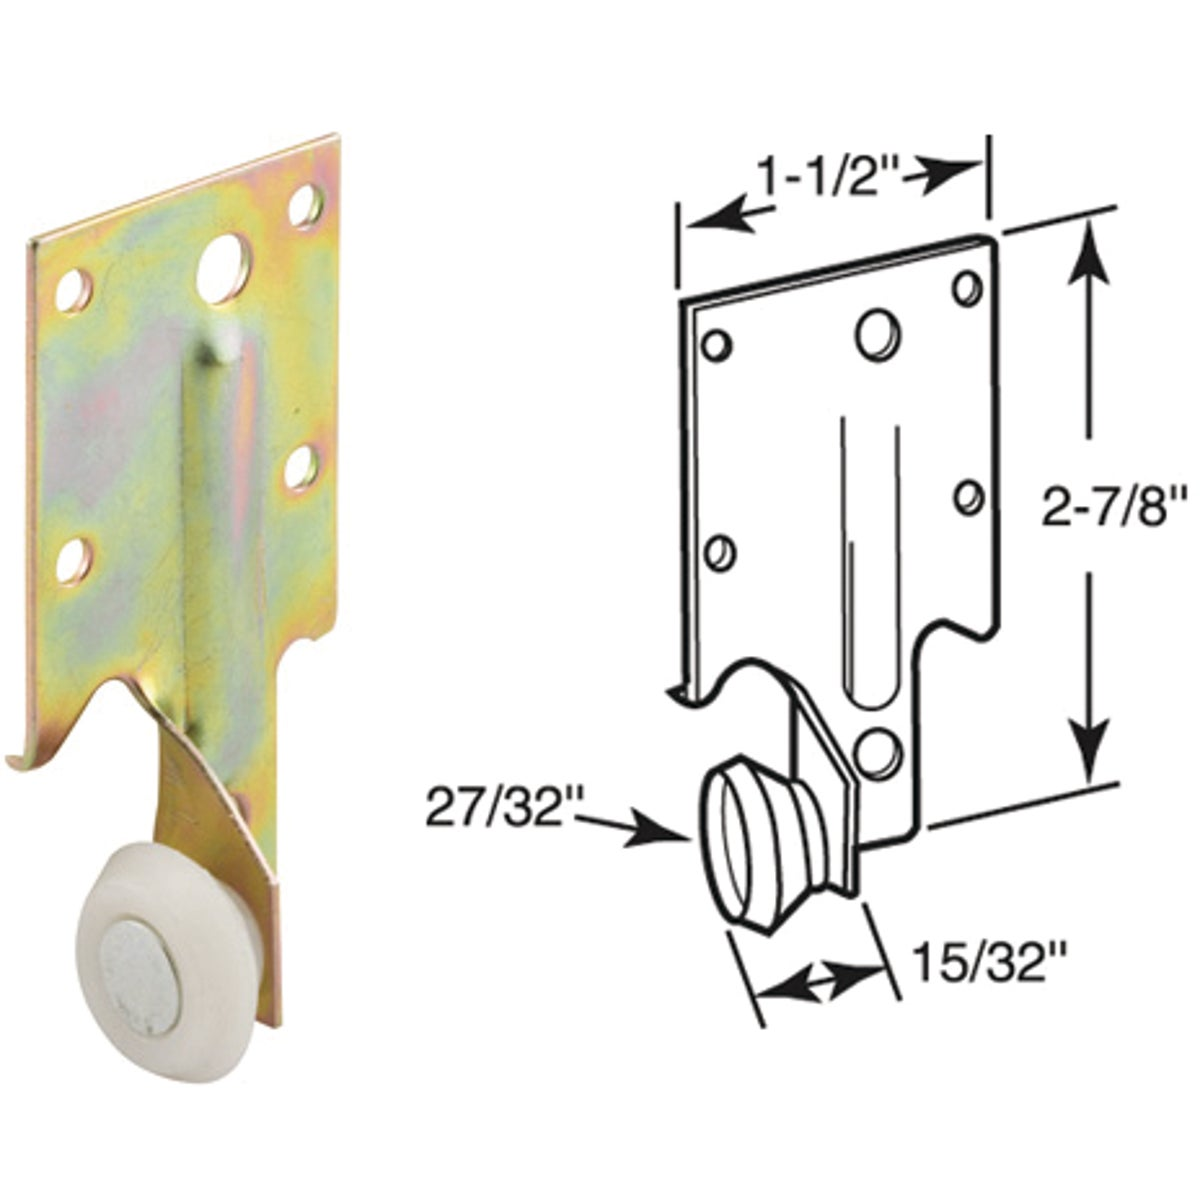 REAR ROLLER BRACKET - 221240 by Prime Line Products